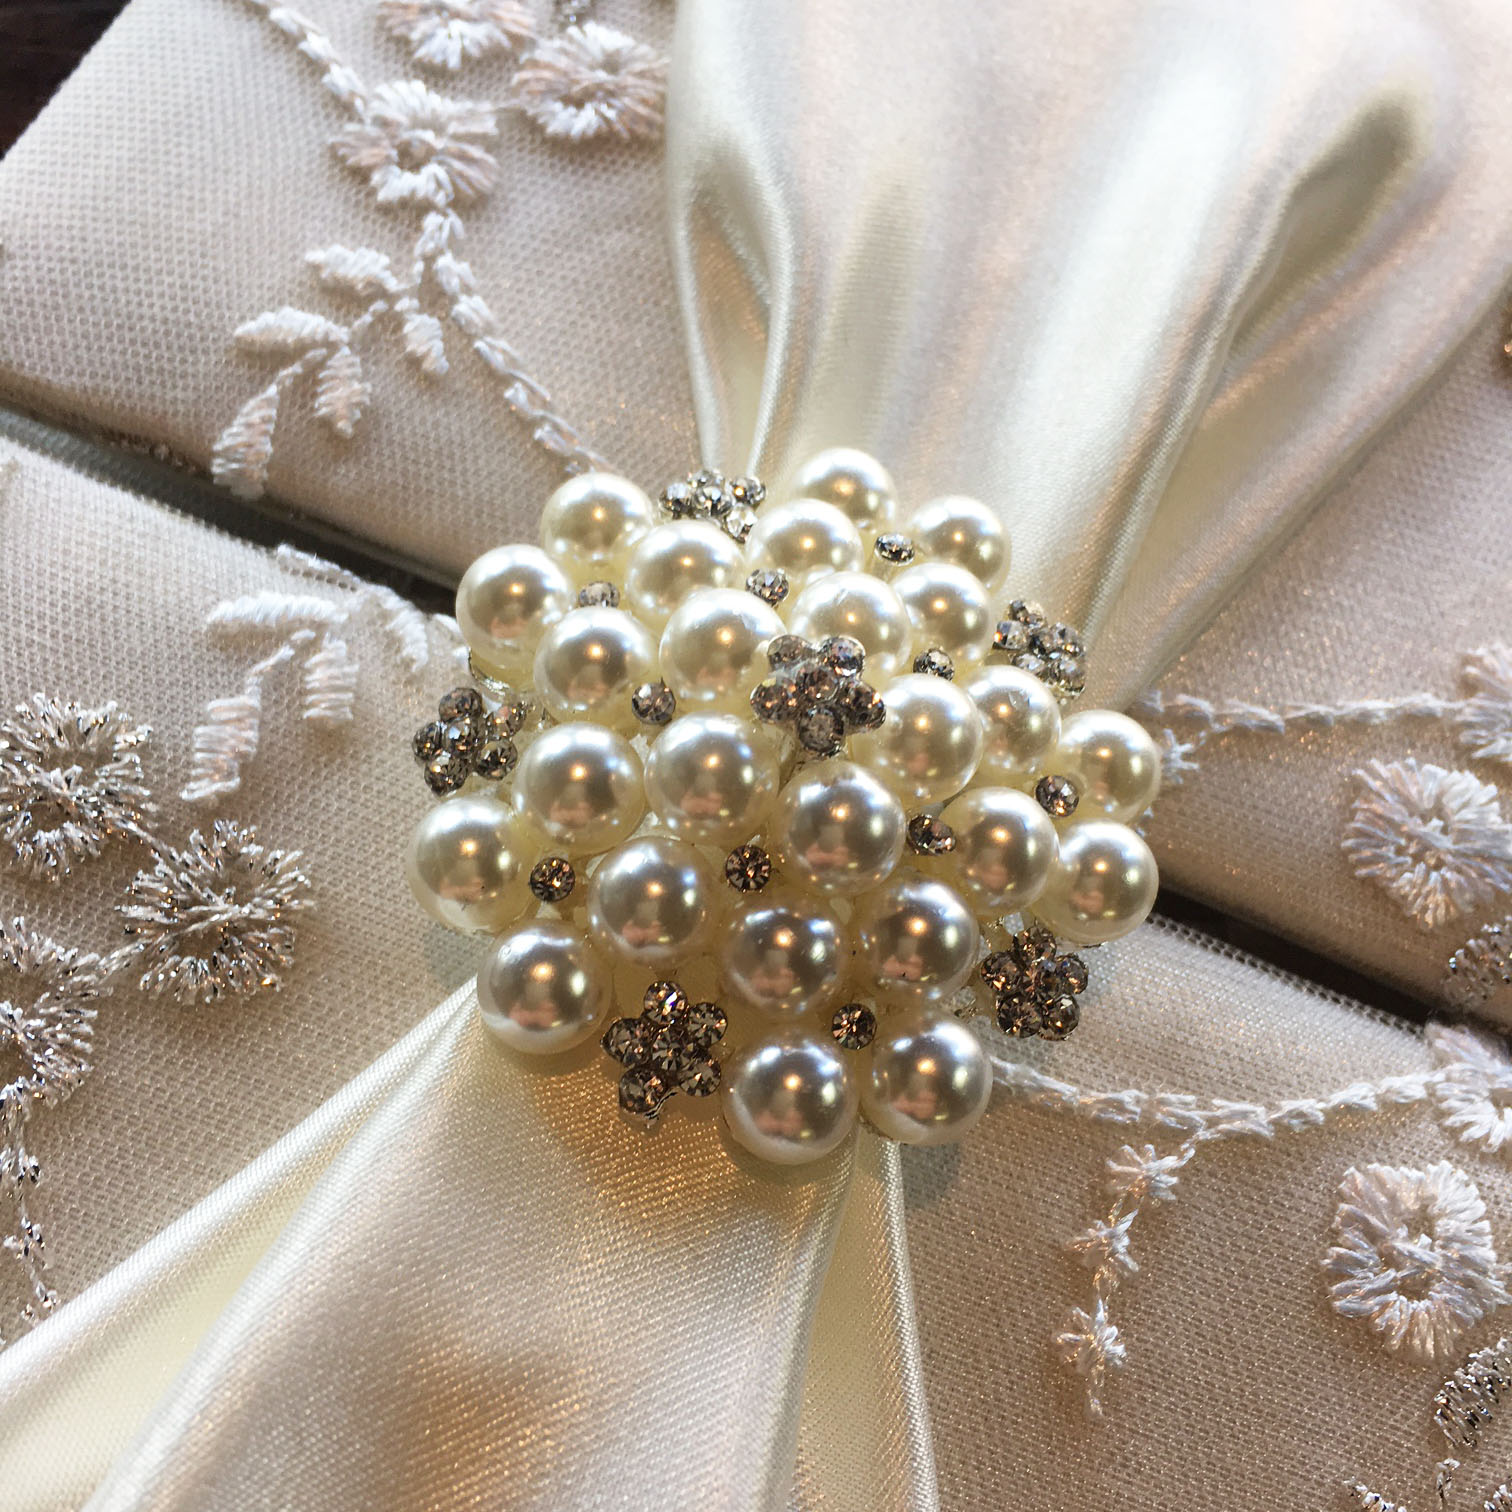 pearl brooch on lace fabric